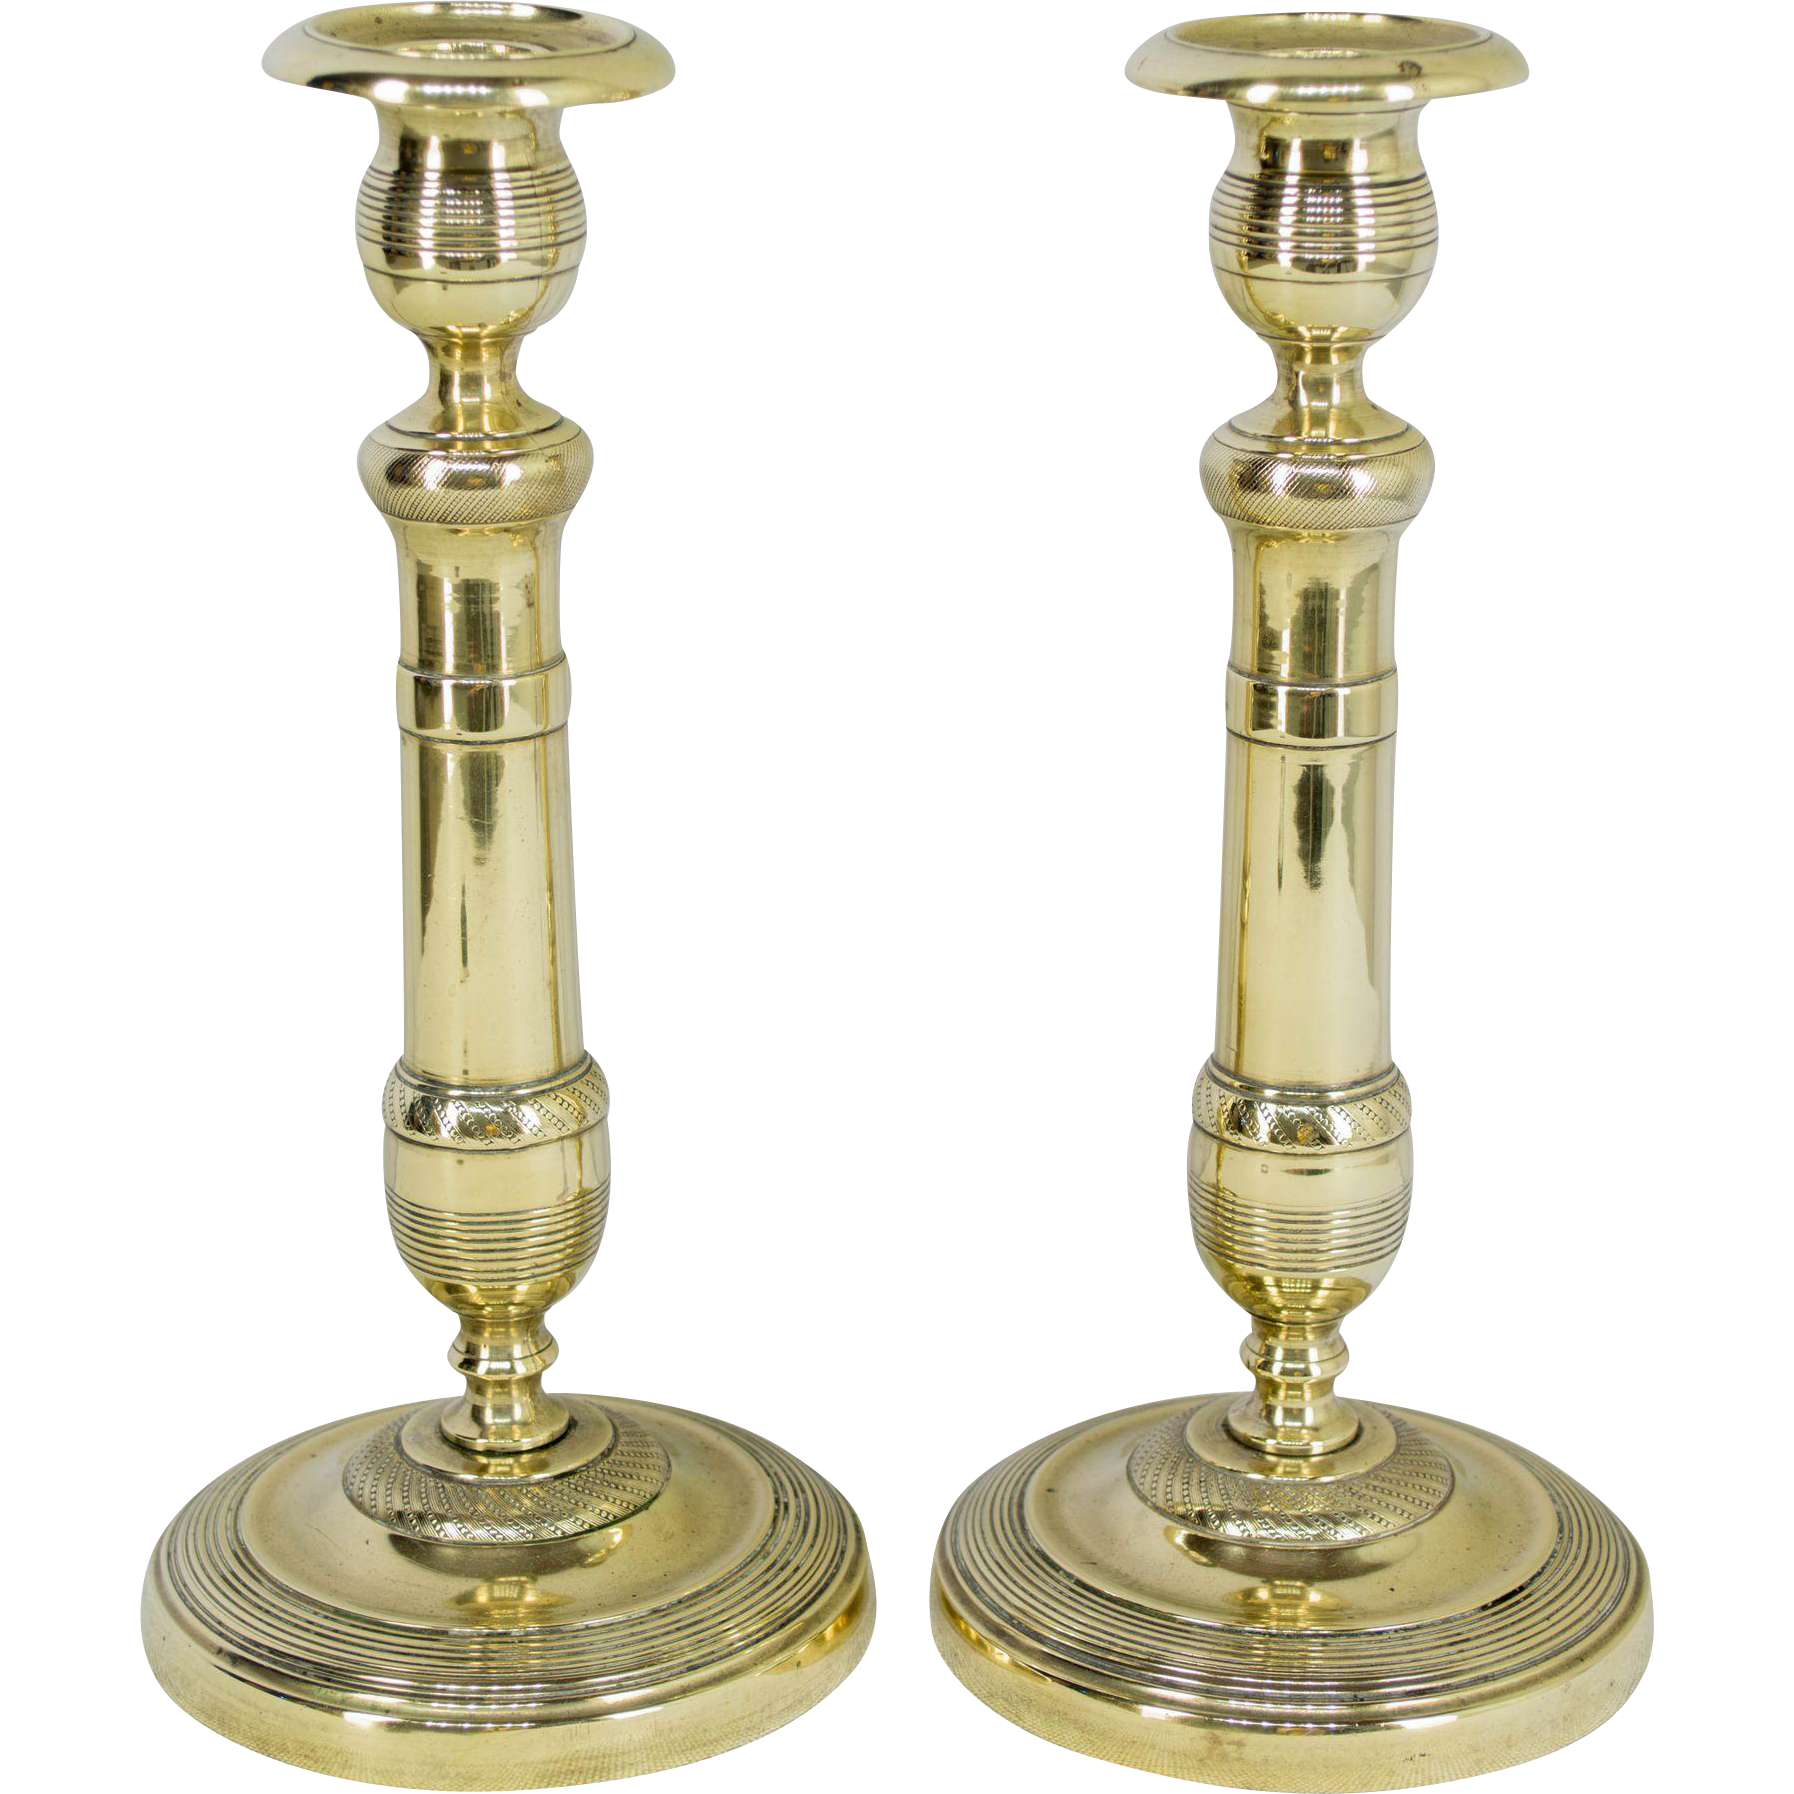 Pair of 19th c. French Candlesticks